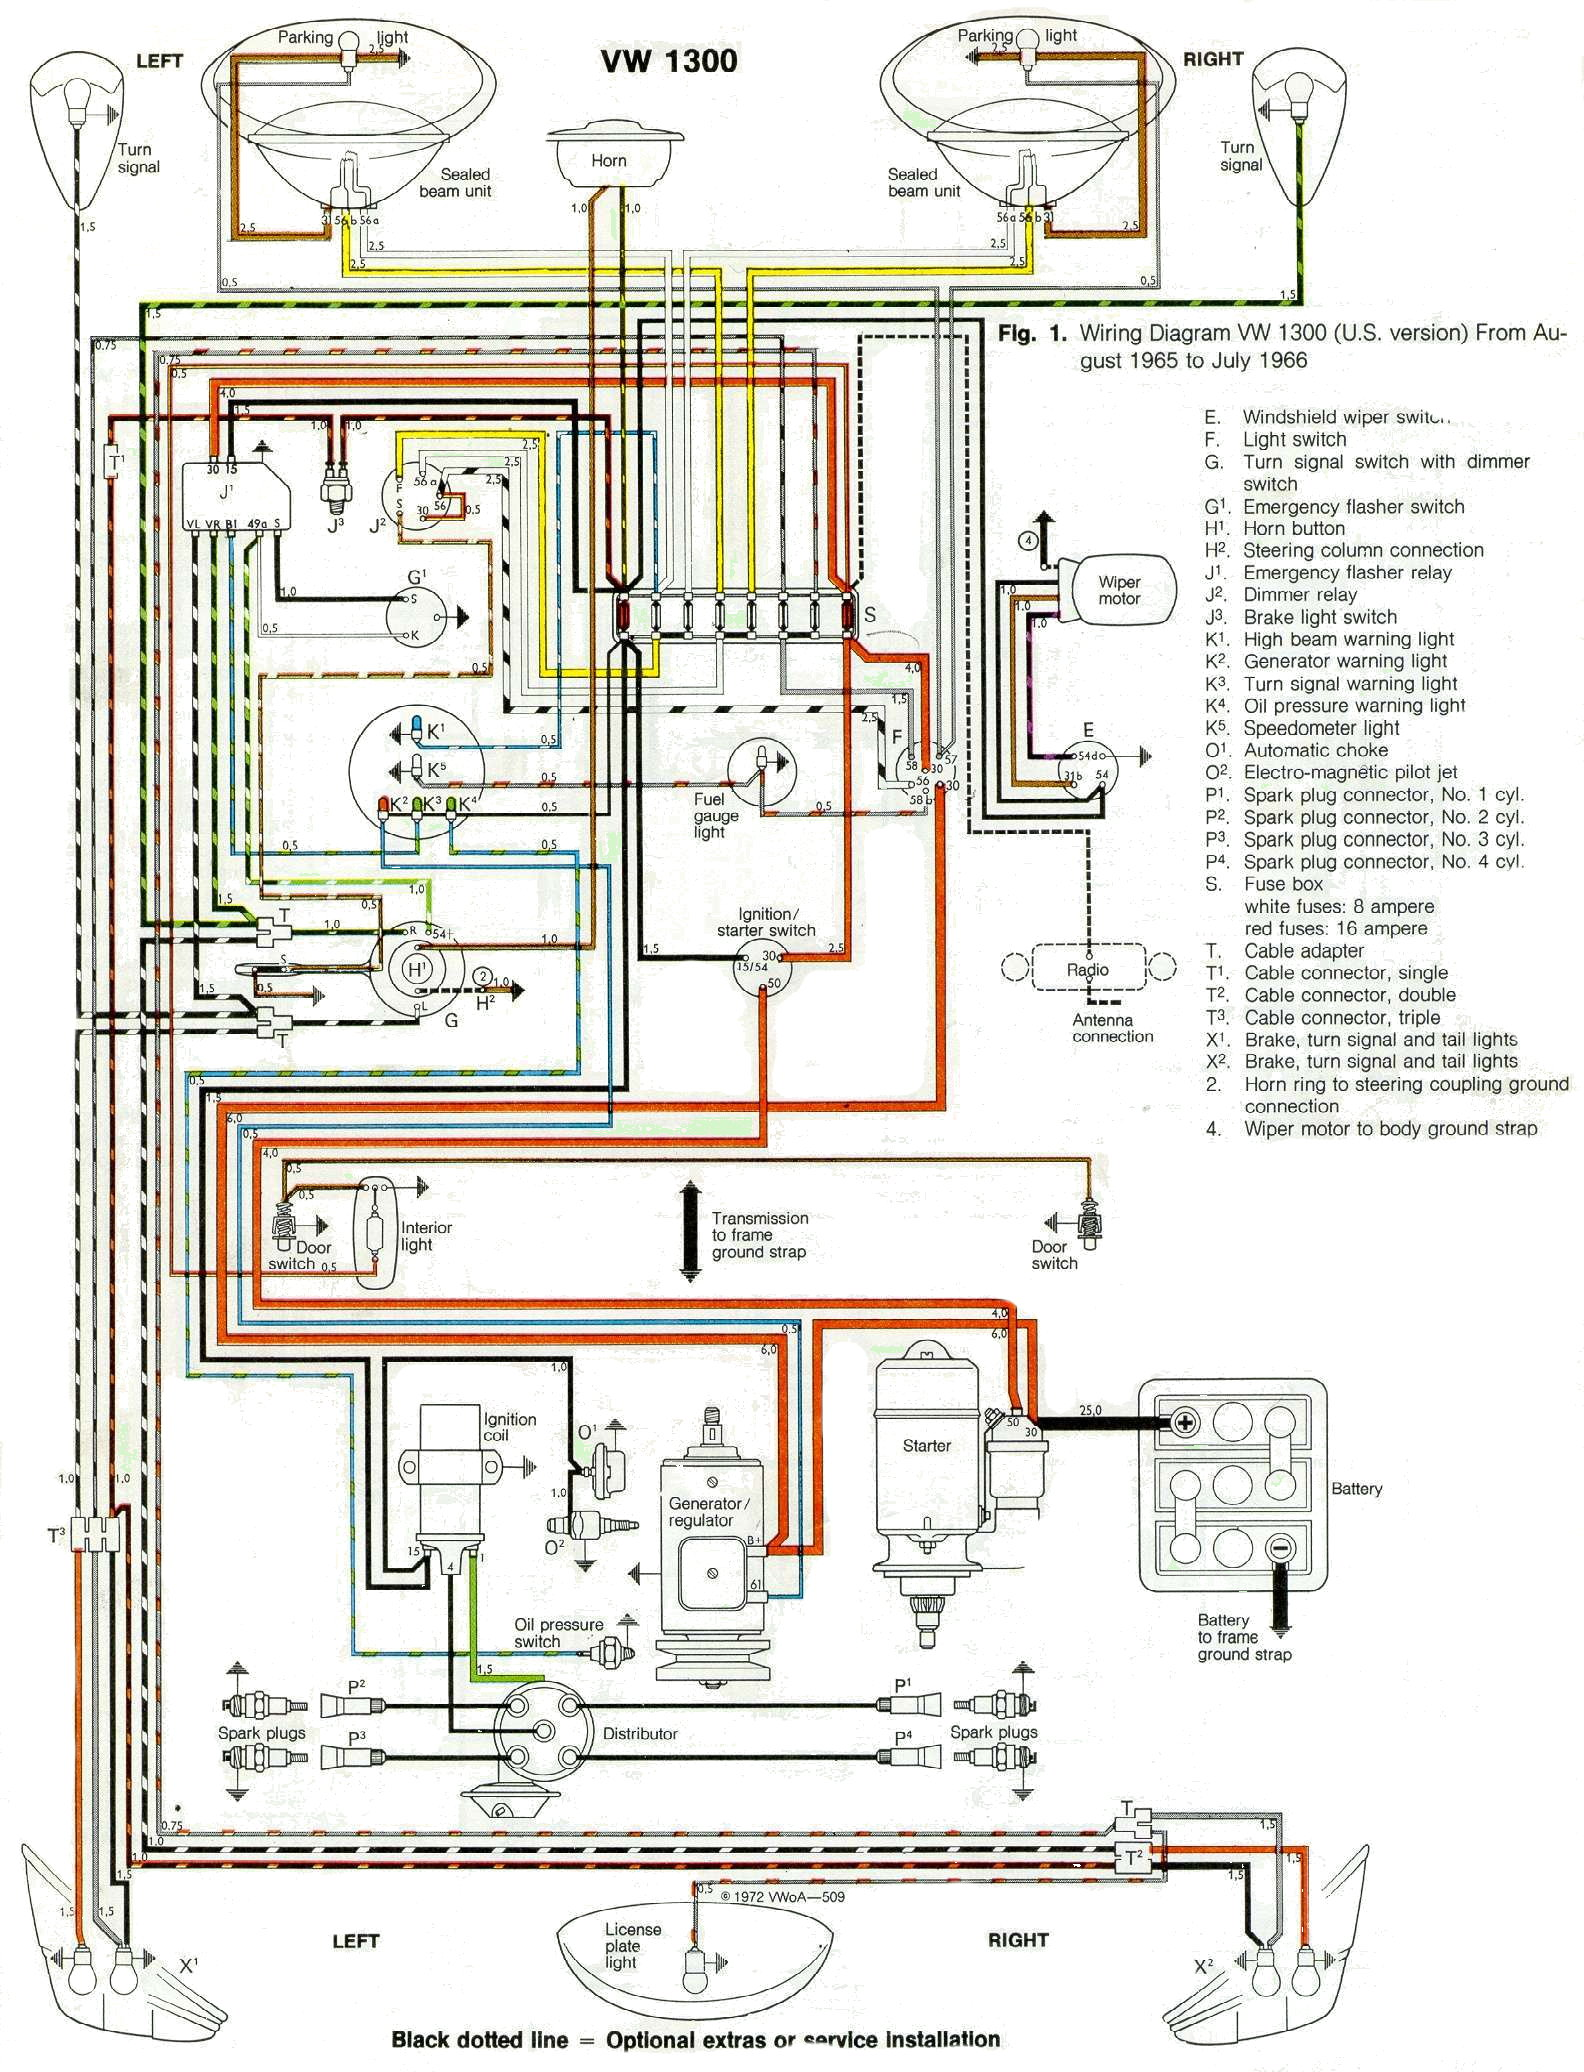 1966 Wiring 1966 wiring diagram vw bug wiring diagram at mifinder.co